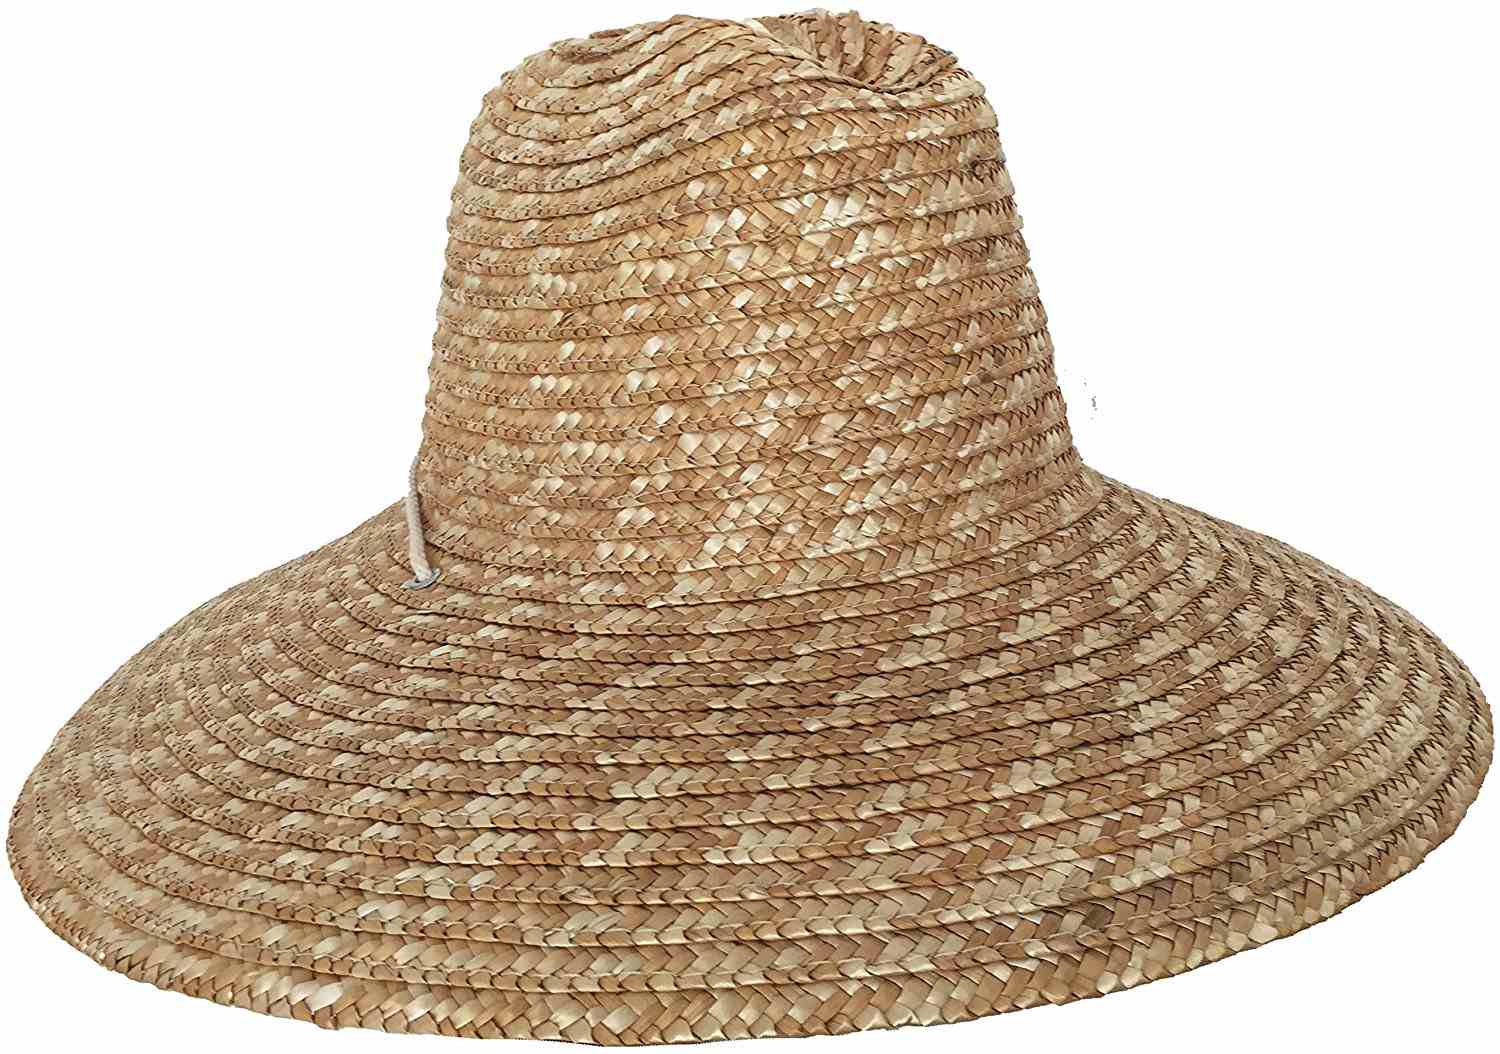 7ef8b021e5a Super Wide Brim Lifeguard Hat Straw Beach Sun Summer Surf Safari Gardening  UPF